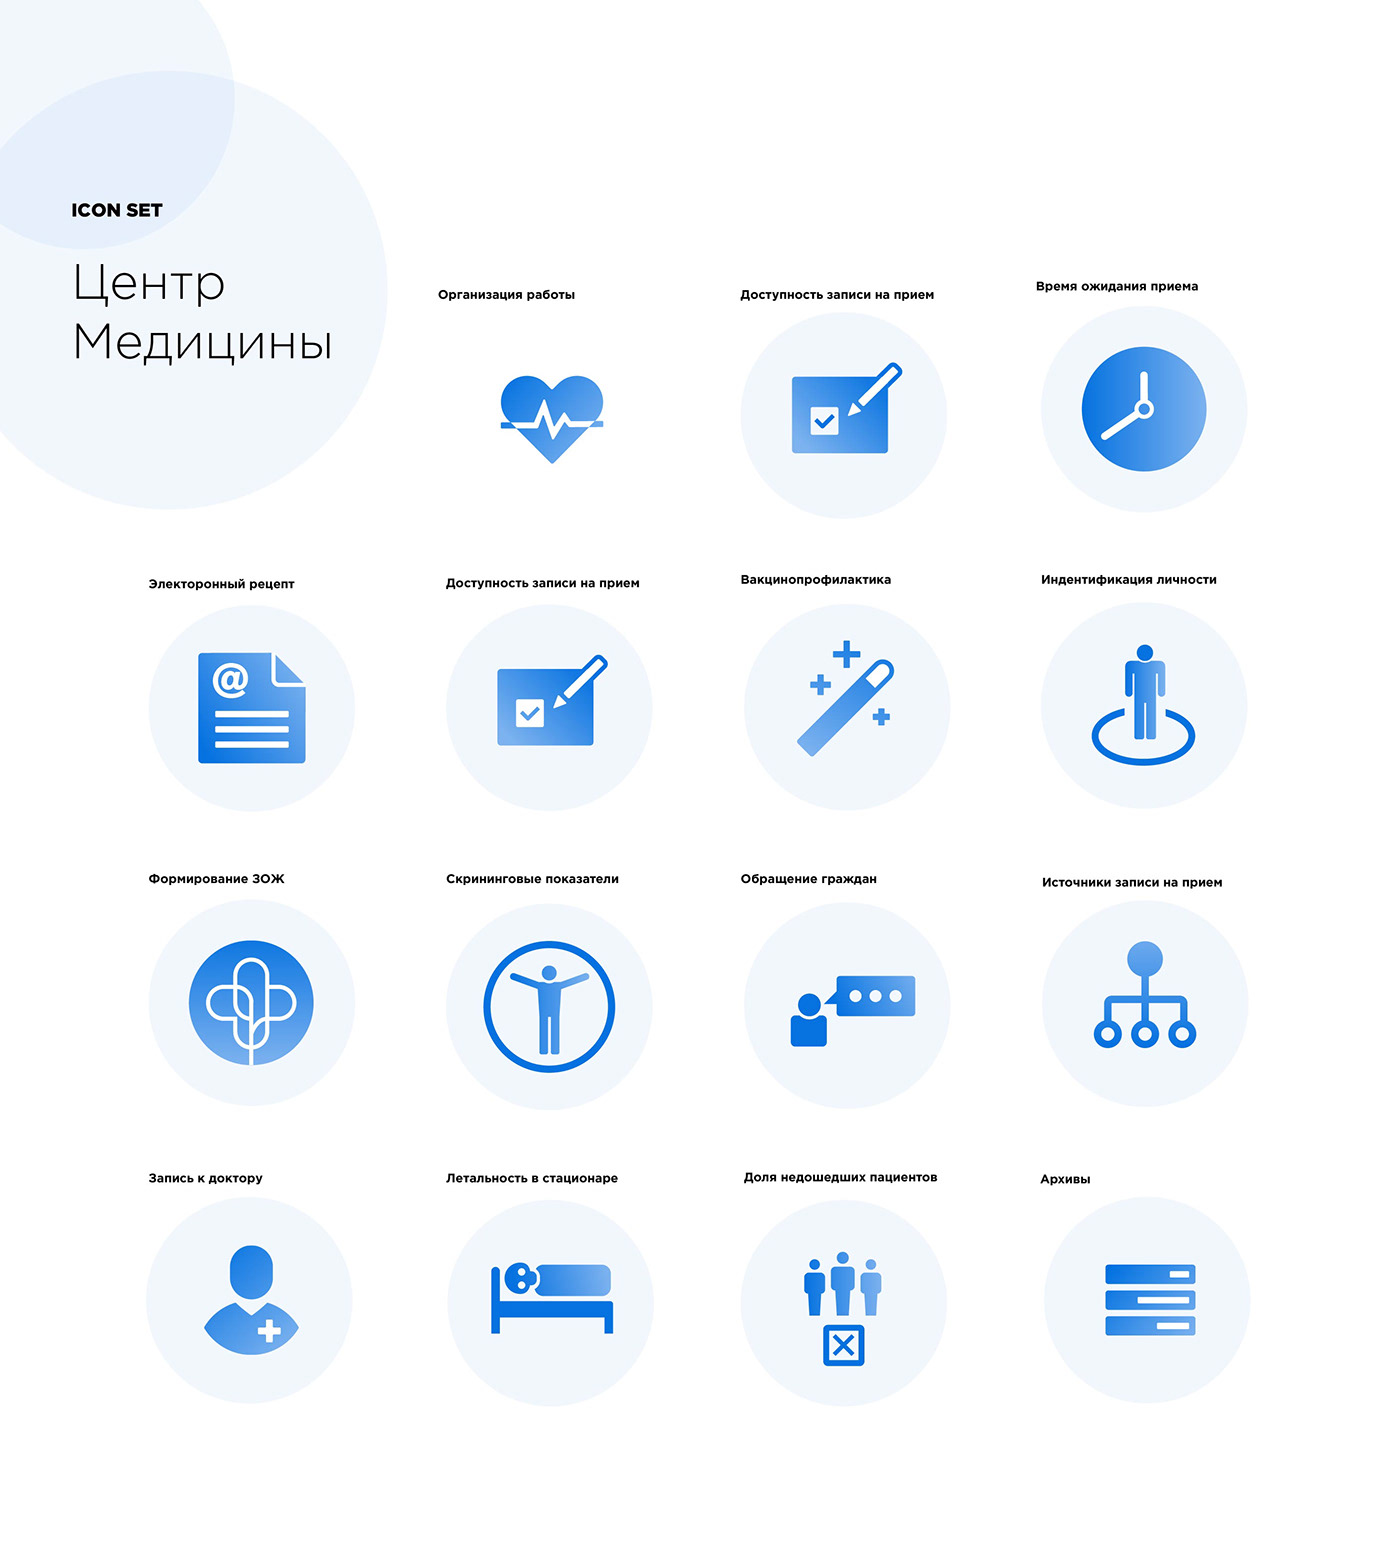 digital agency storage of things medical center icon set icon pack icons banner SMM пост smm banner